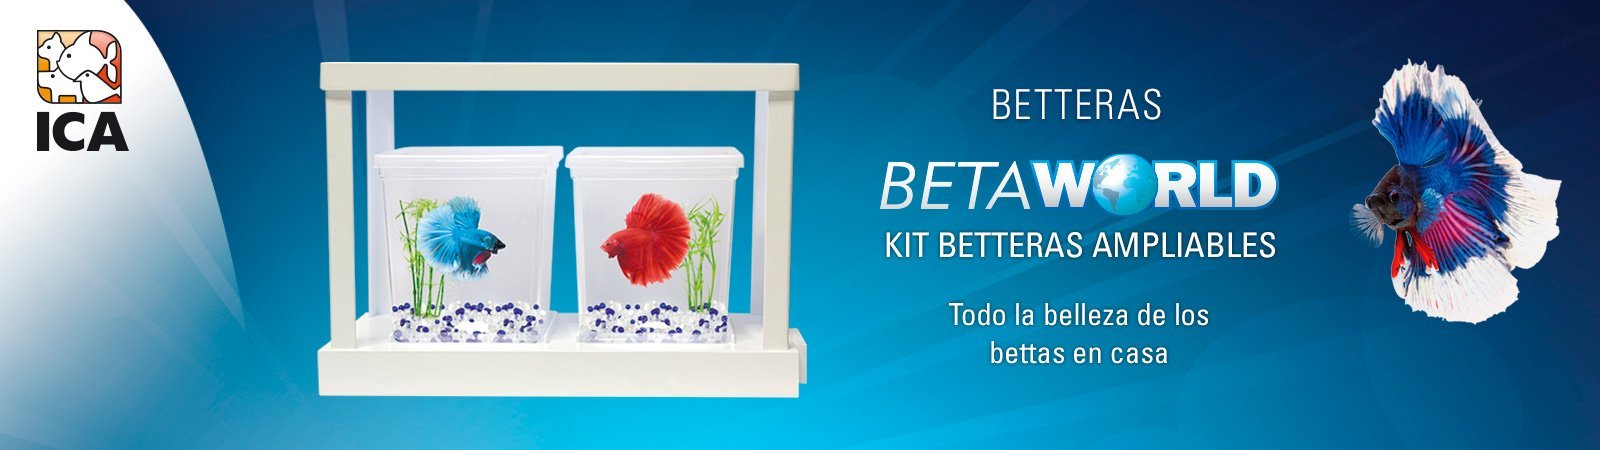 BetaWorld KIT